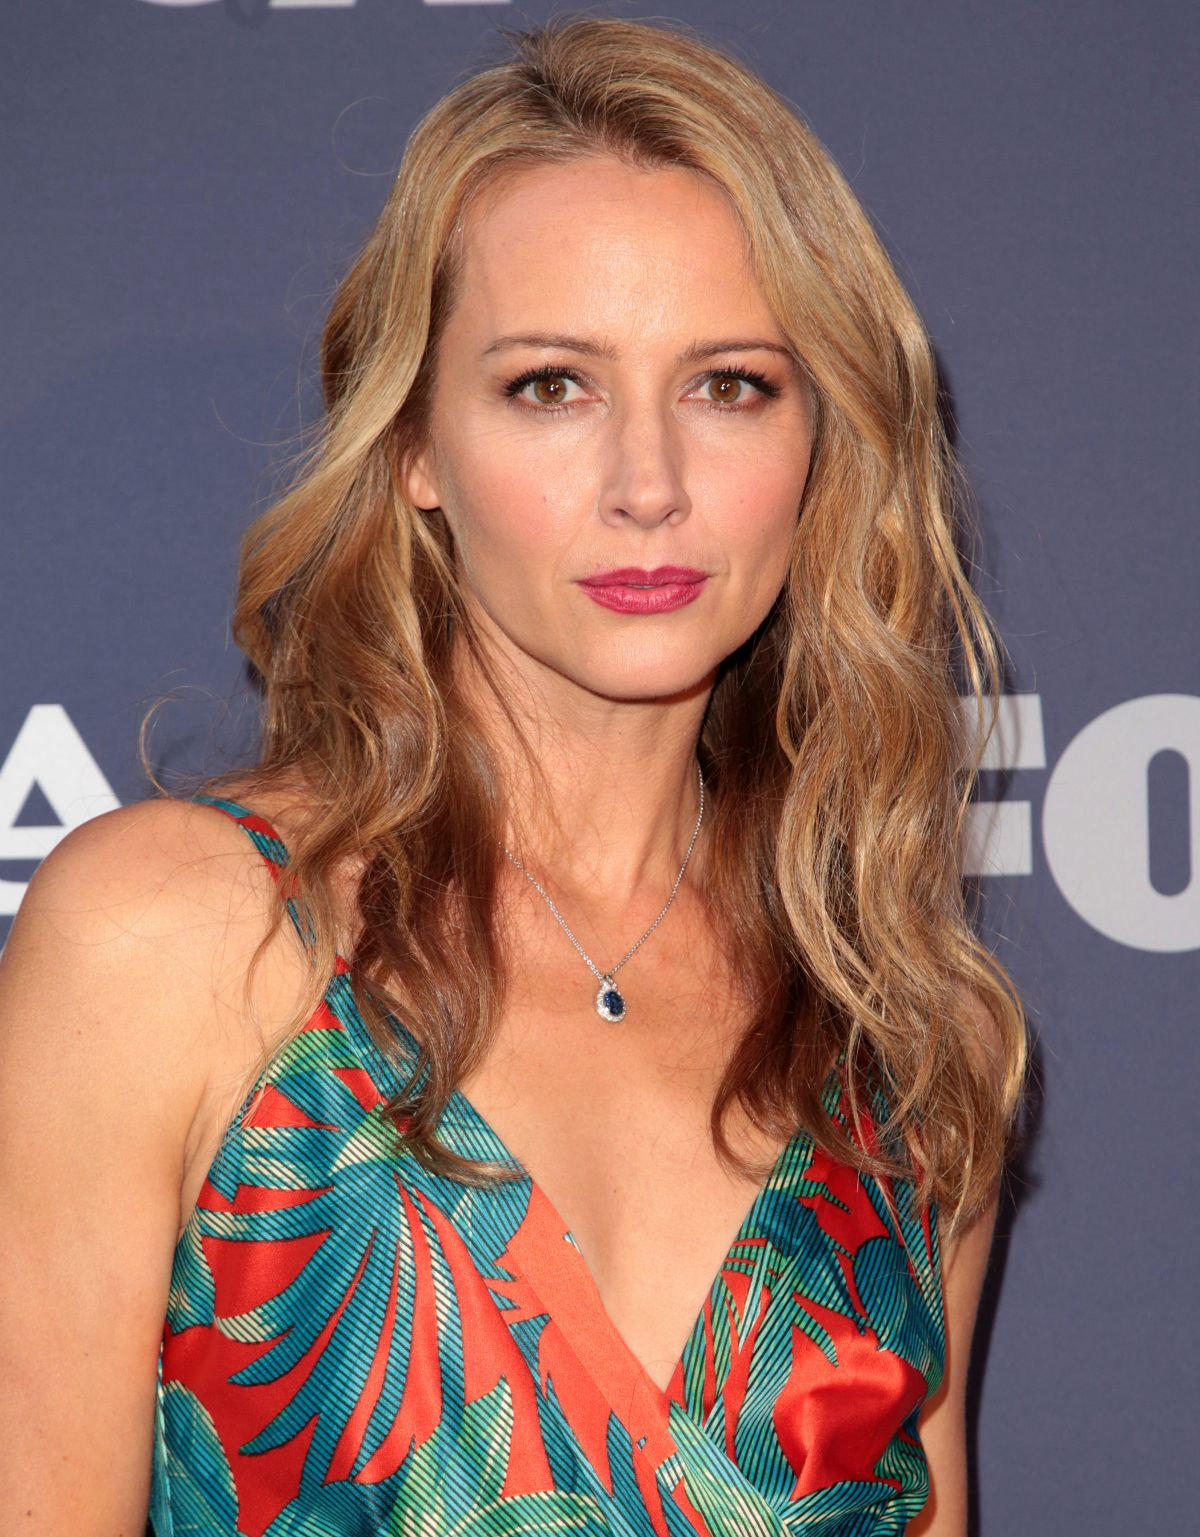 Amy Acker Bikini amy acker at fox summer all-star party in los angeles 08/02